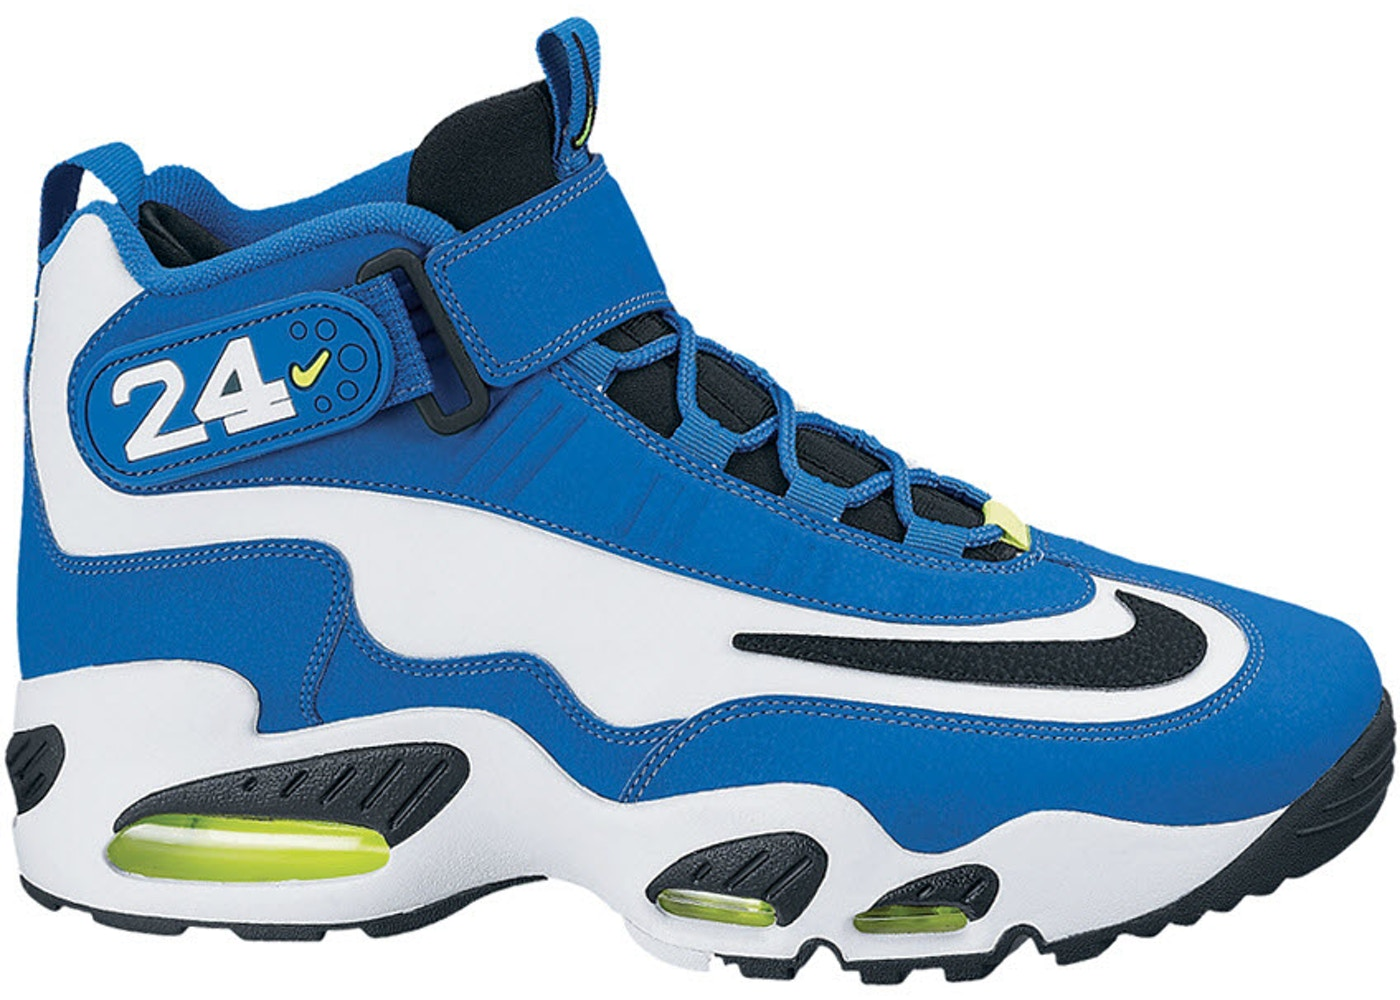 new style 2b134 d618c Nike Air Griffey Max 1 Varsity Royal (2016) - 354912-400